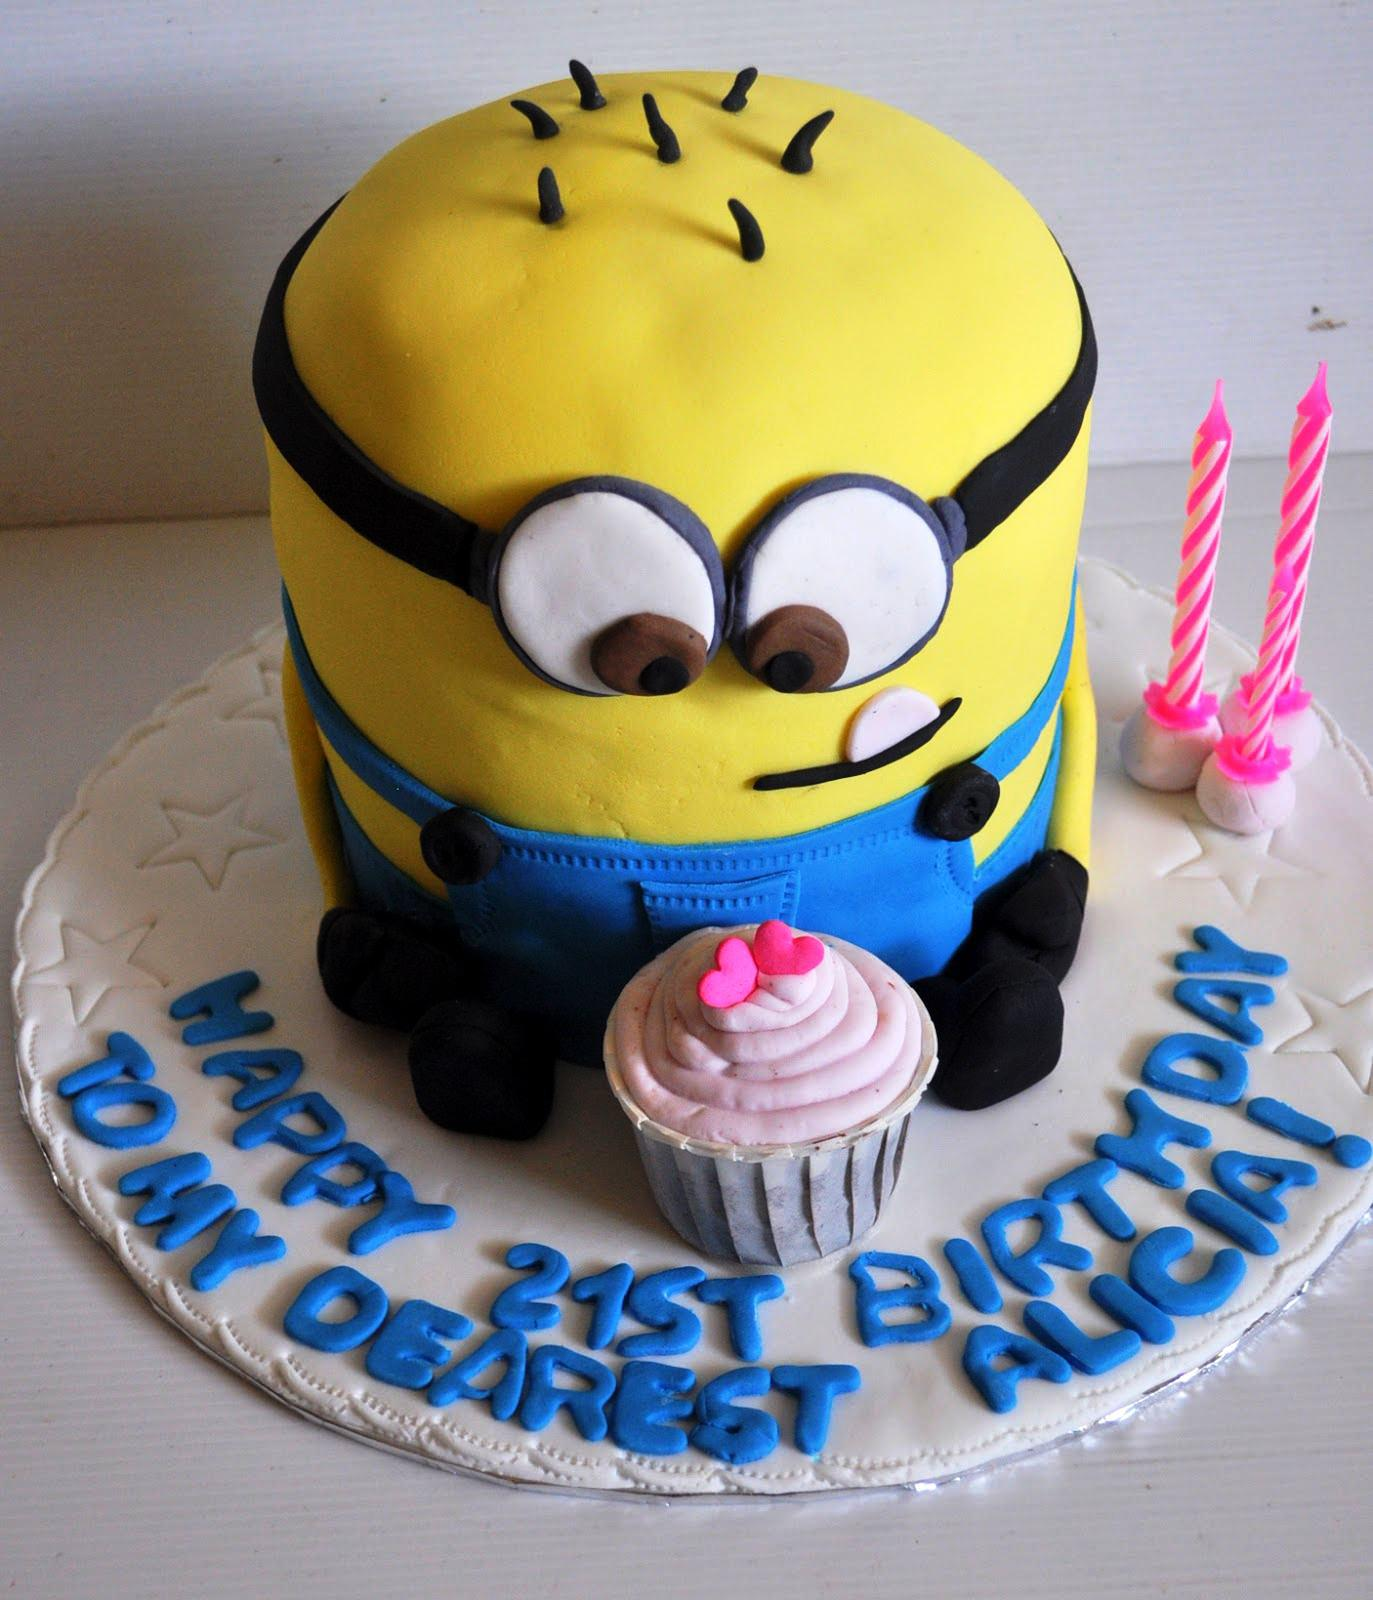 Phenomenal Birthday Cake Photo Directory Page 1116 Snackncake Funny Birthday Cards Online Overcheapnameinfo